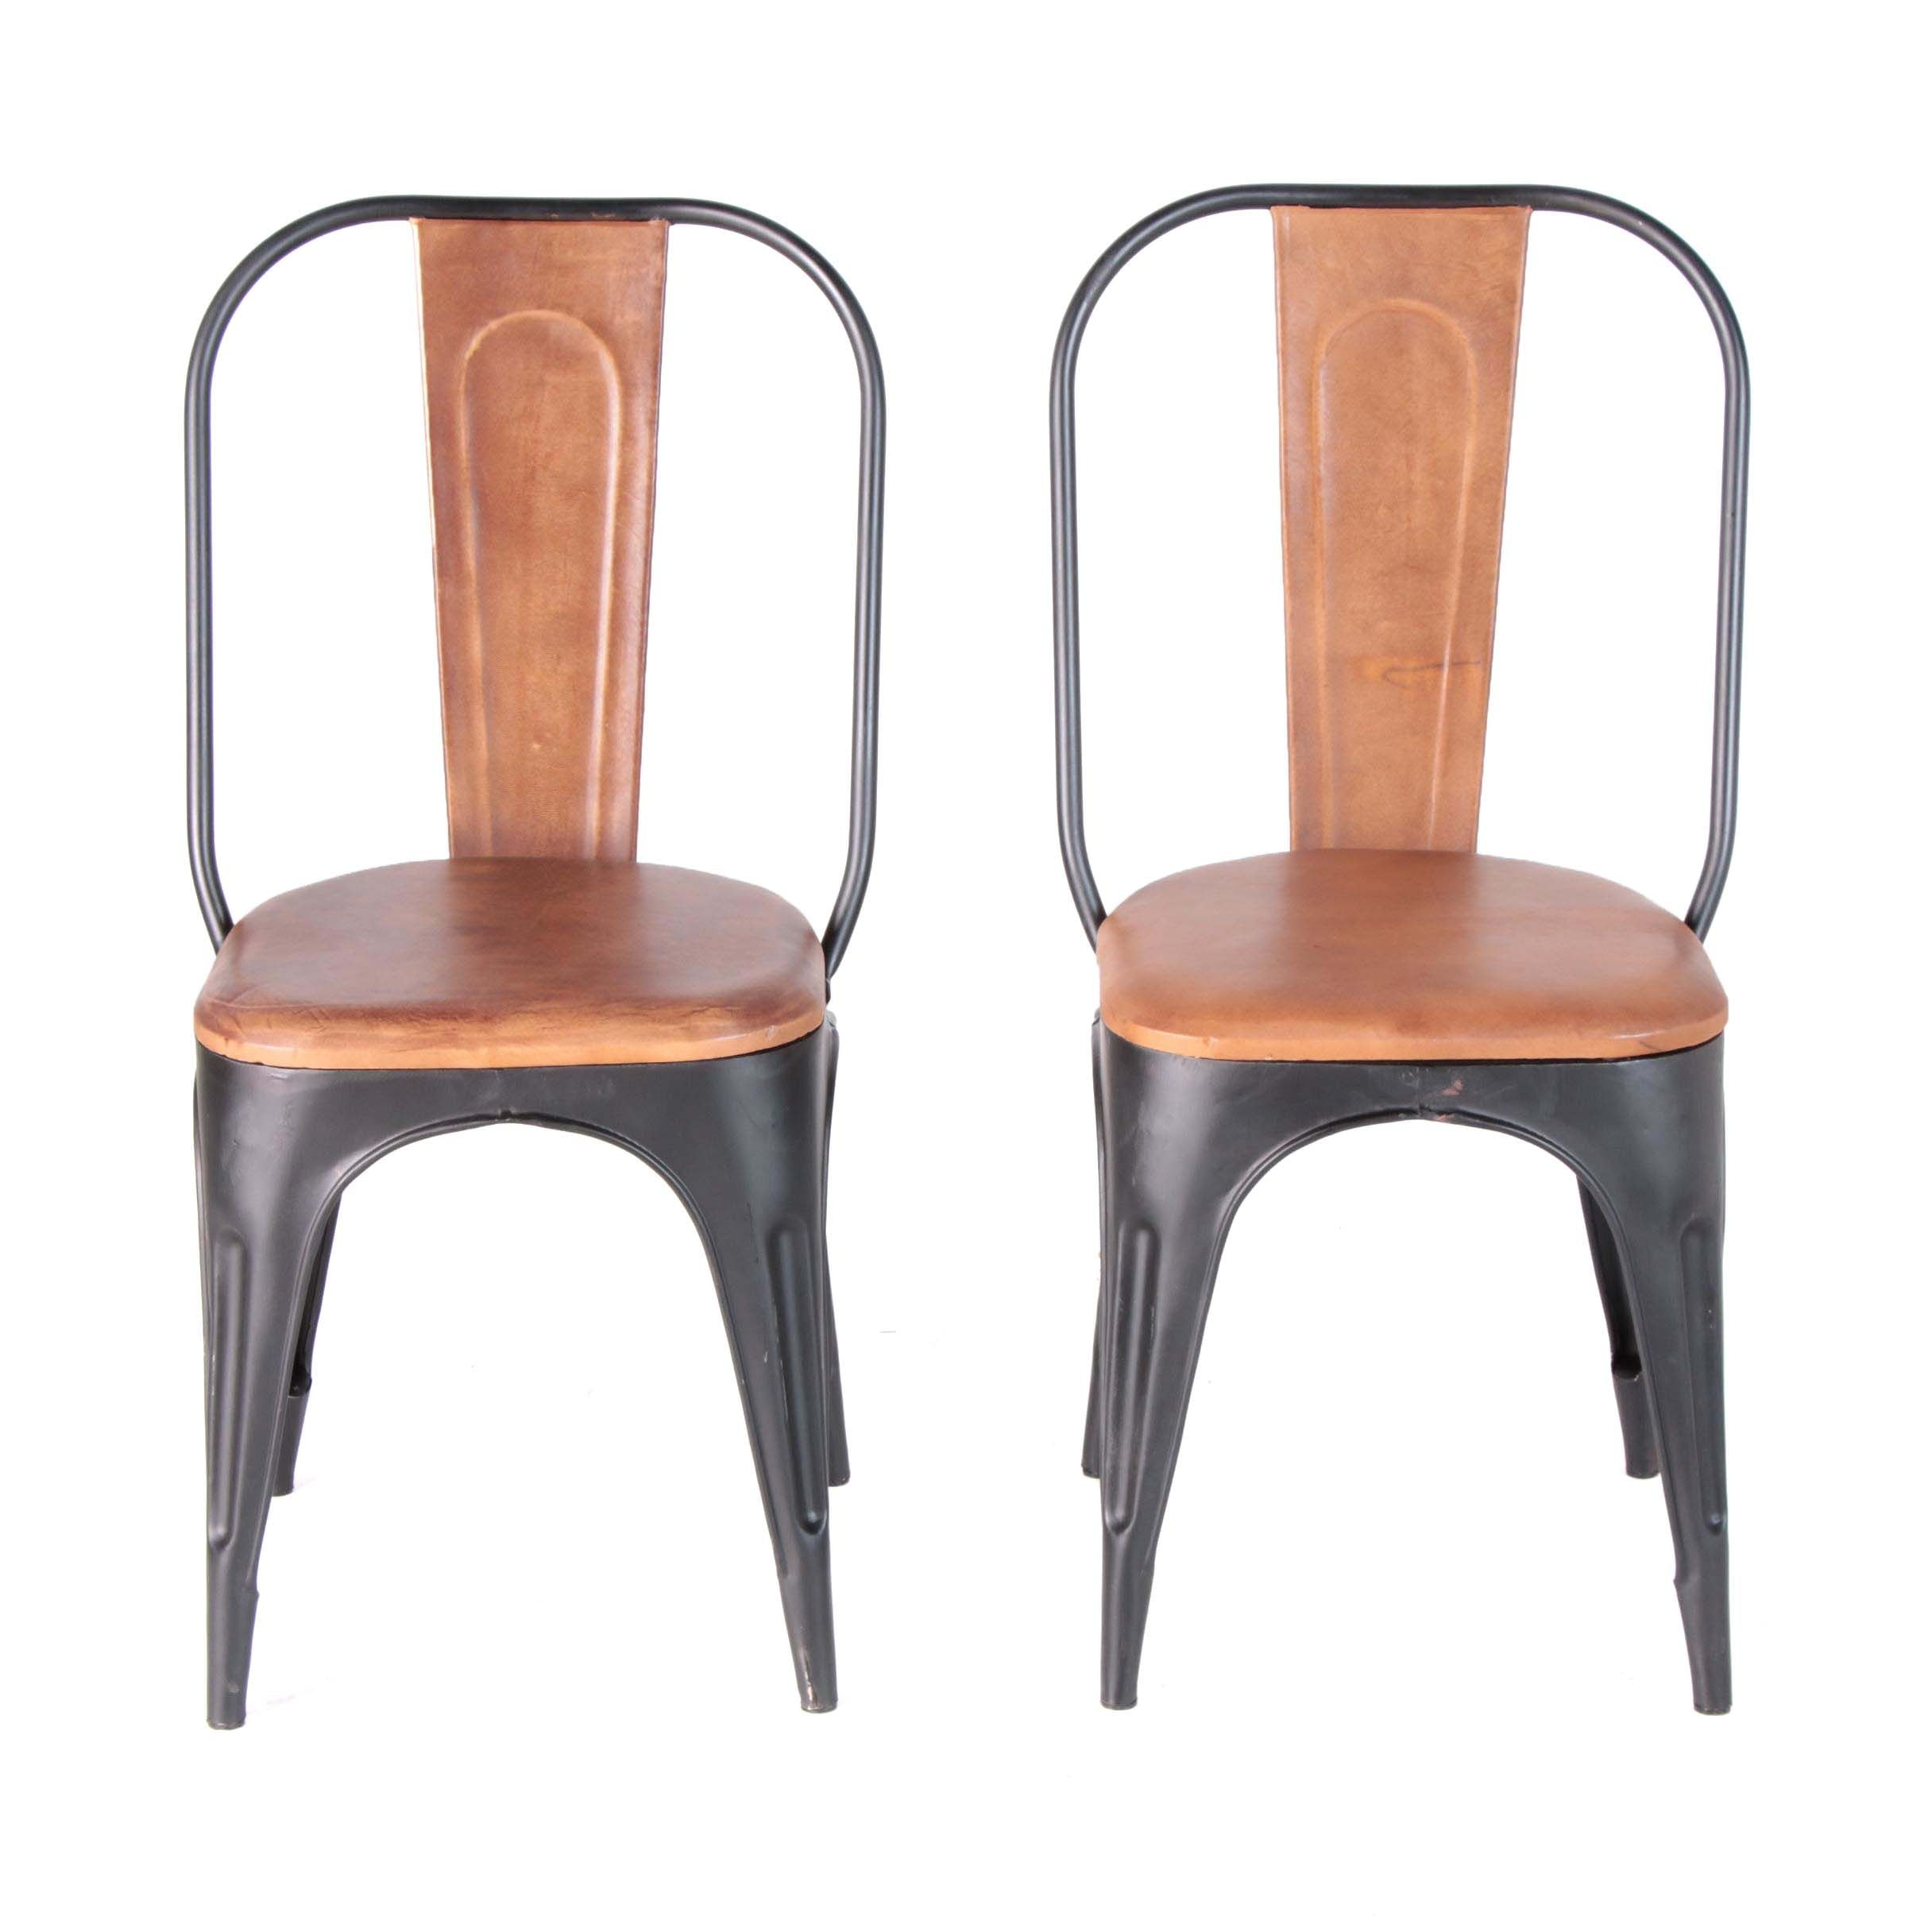 "Industrial Style ""Tackshop"" Leather and Metal Dining Chairs"